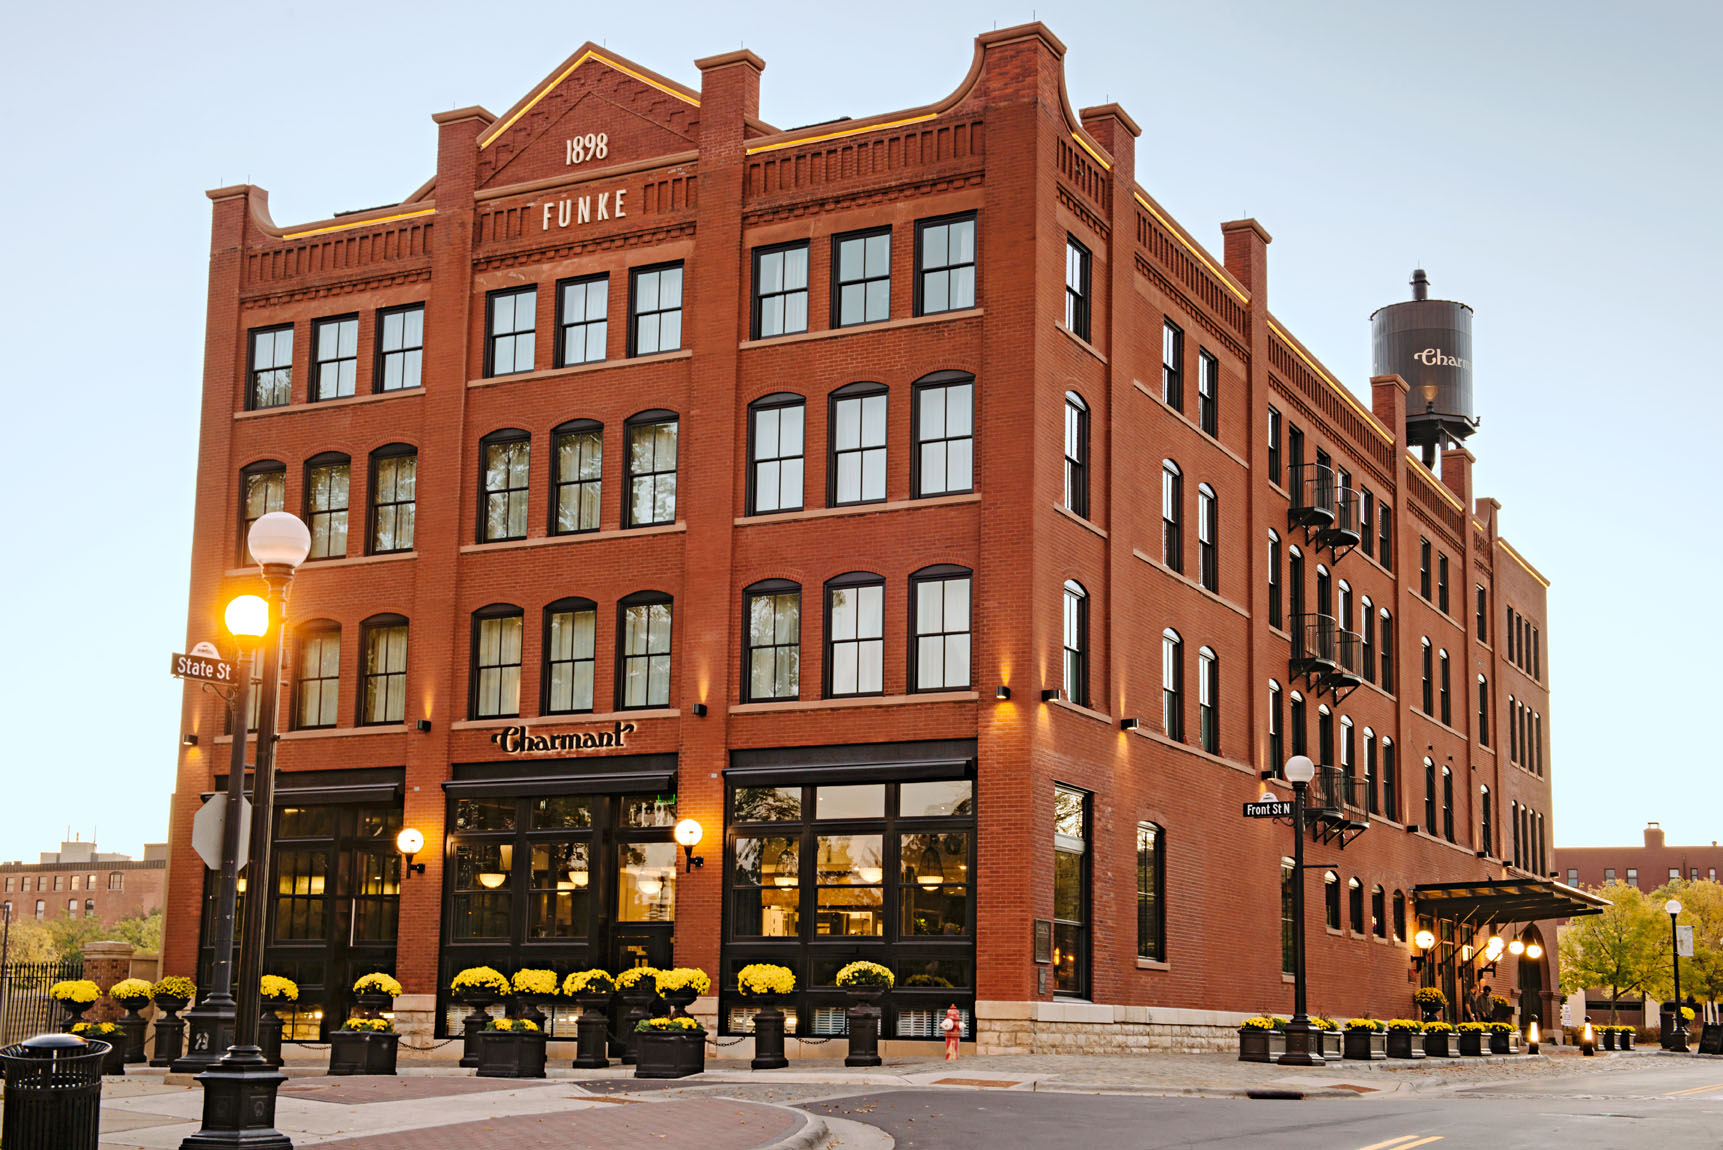 Reborn Spaces: The Charmant sits on the site where La Crosse's first building was built in 1842. Today 52,000 people live in the city, a gateway to the outdoors with award-winning restaurants and a University of Wisconsin campus serving 10,000 students.